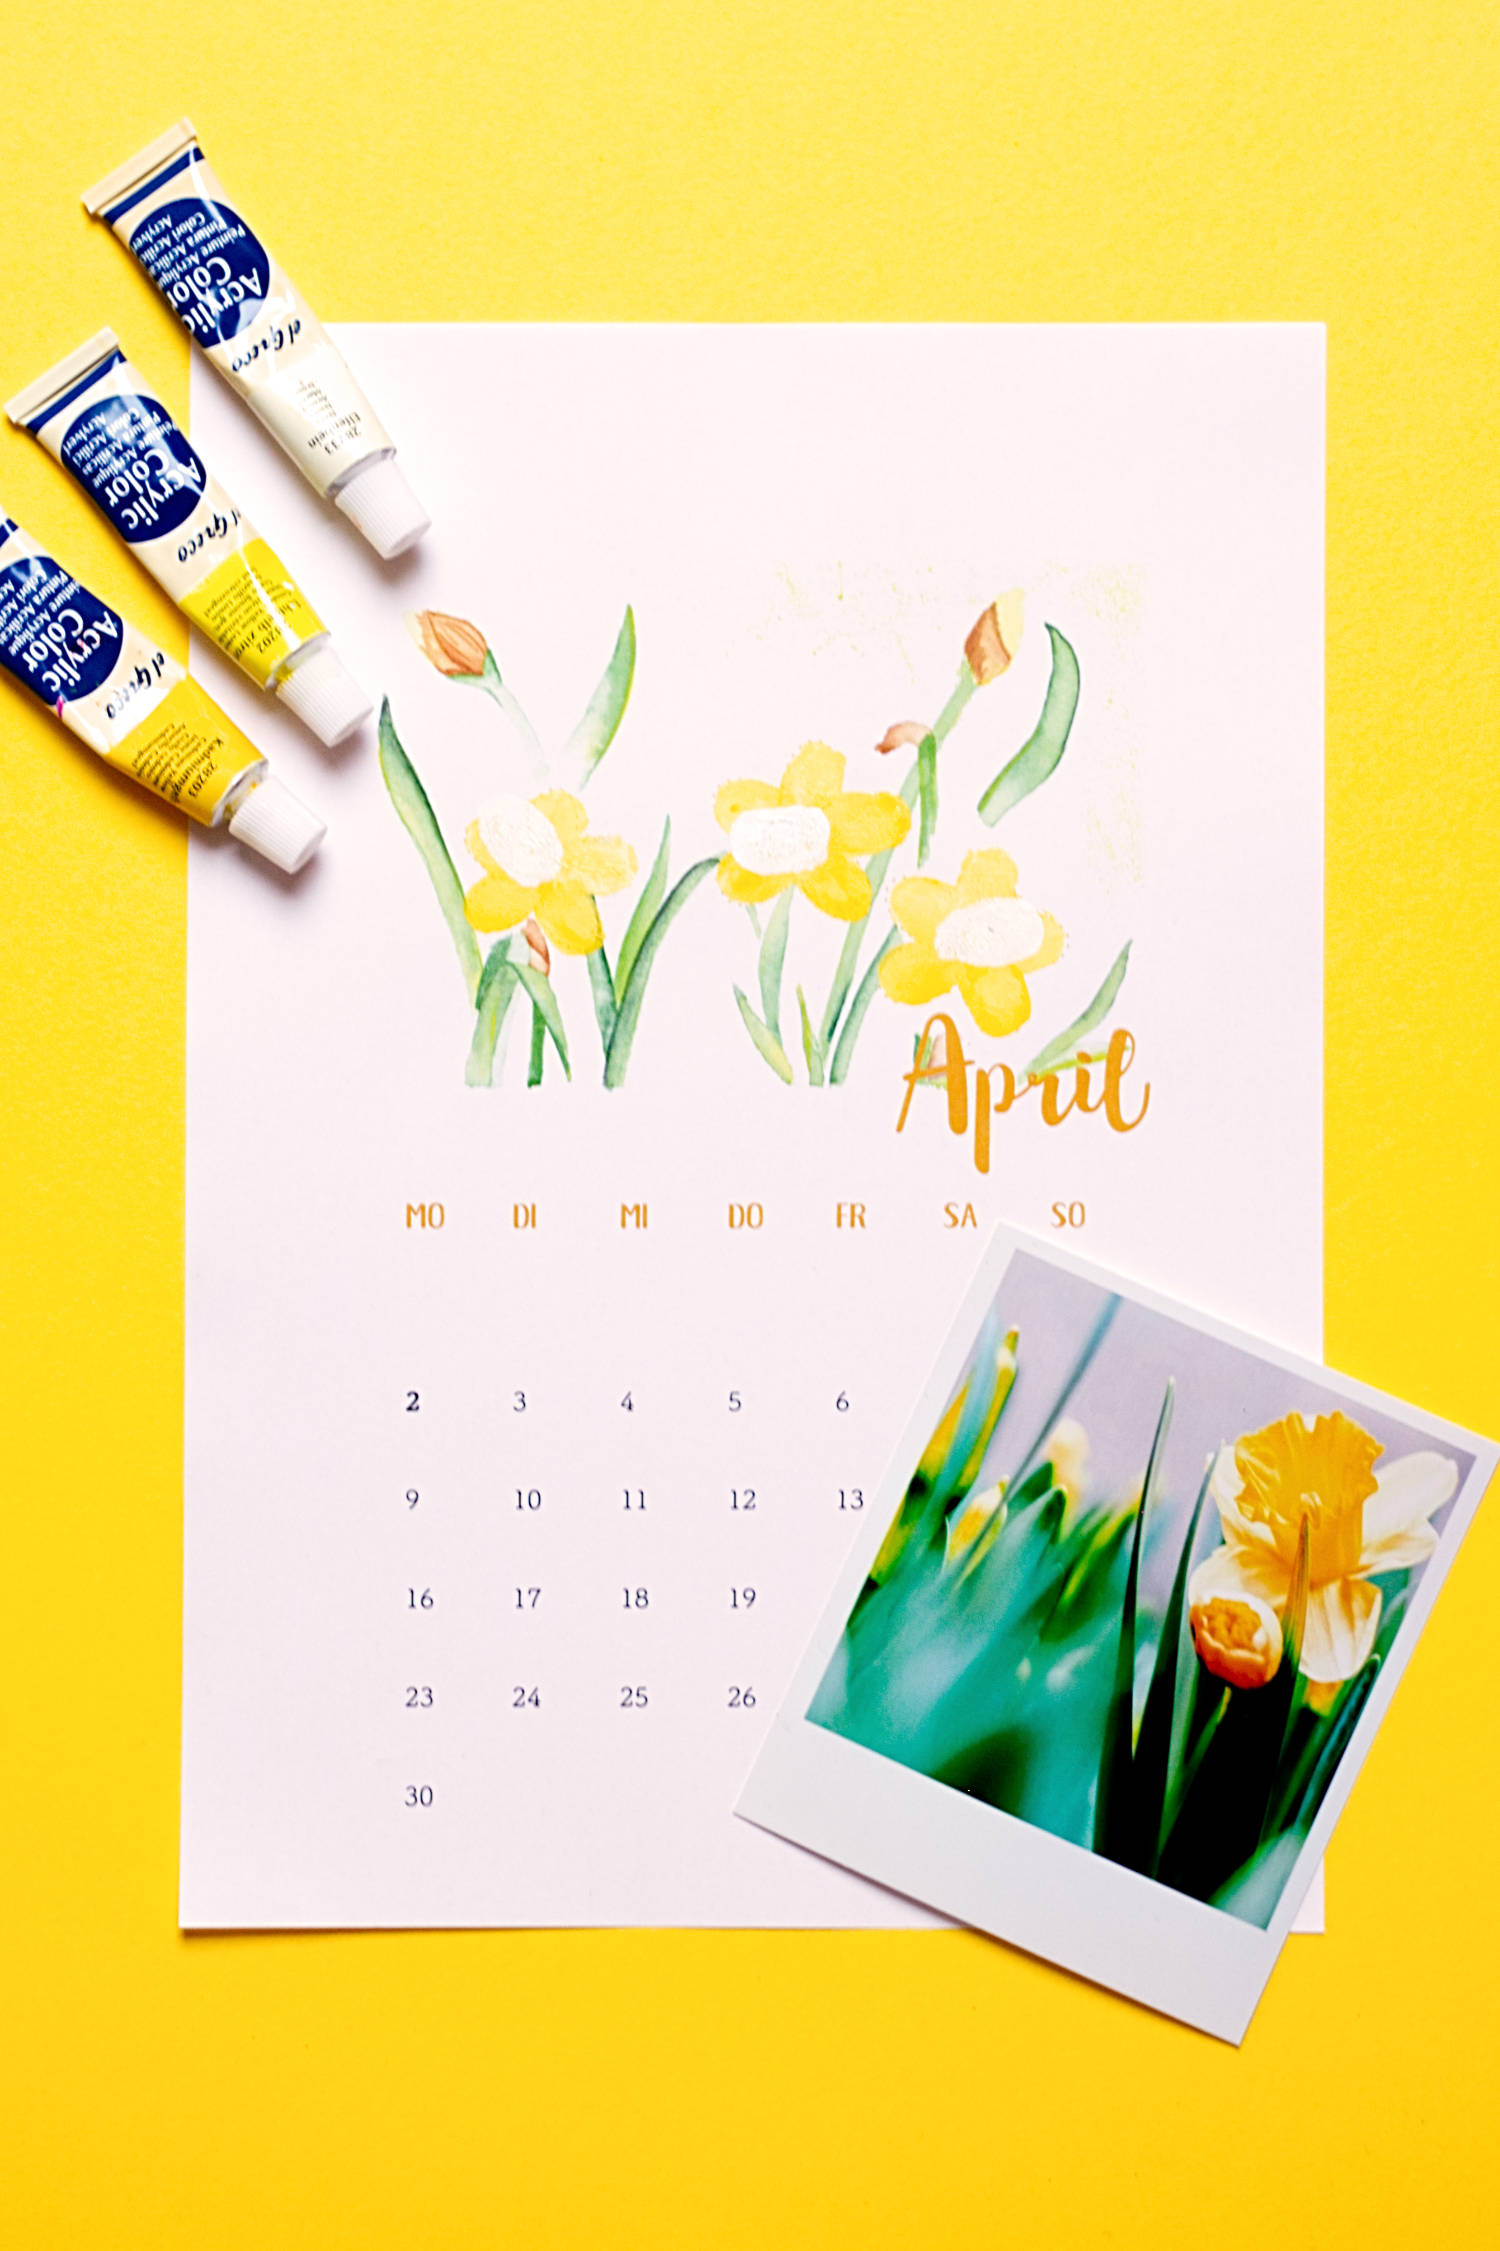 April - Kalender 2018 zum Fingerstempeln